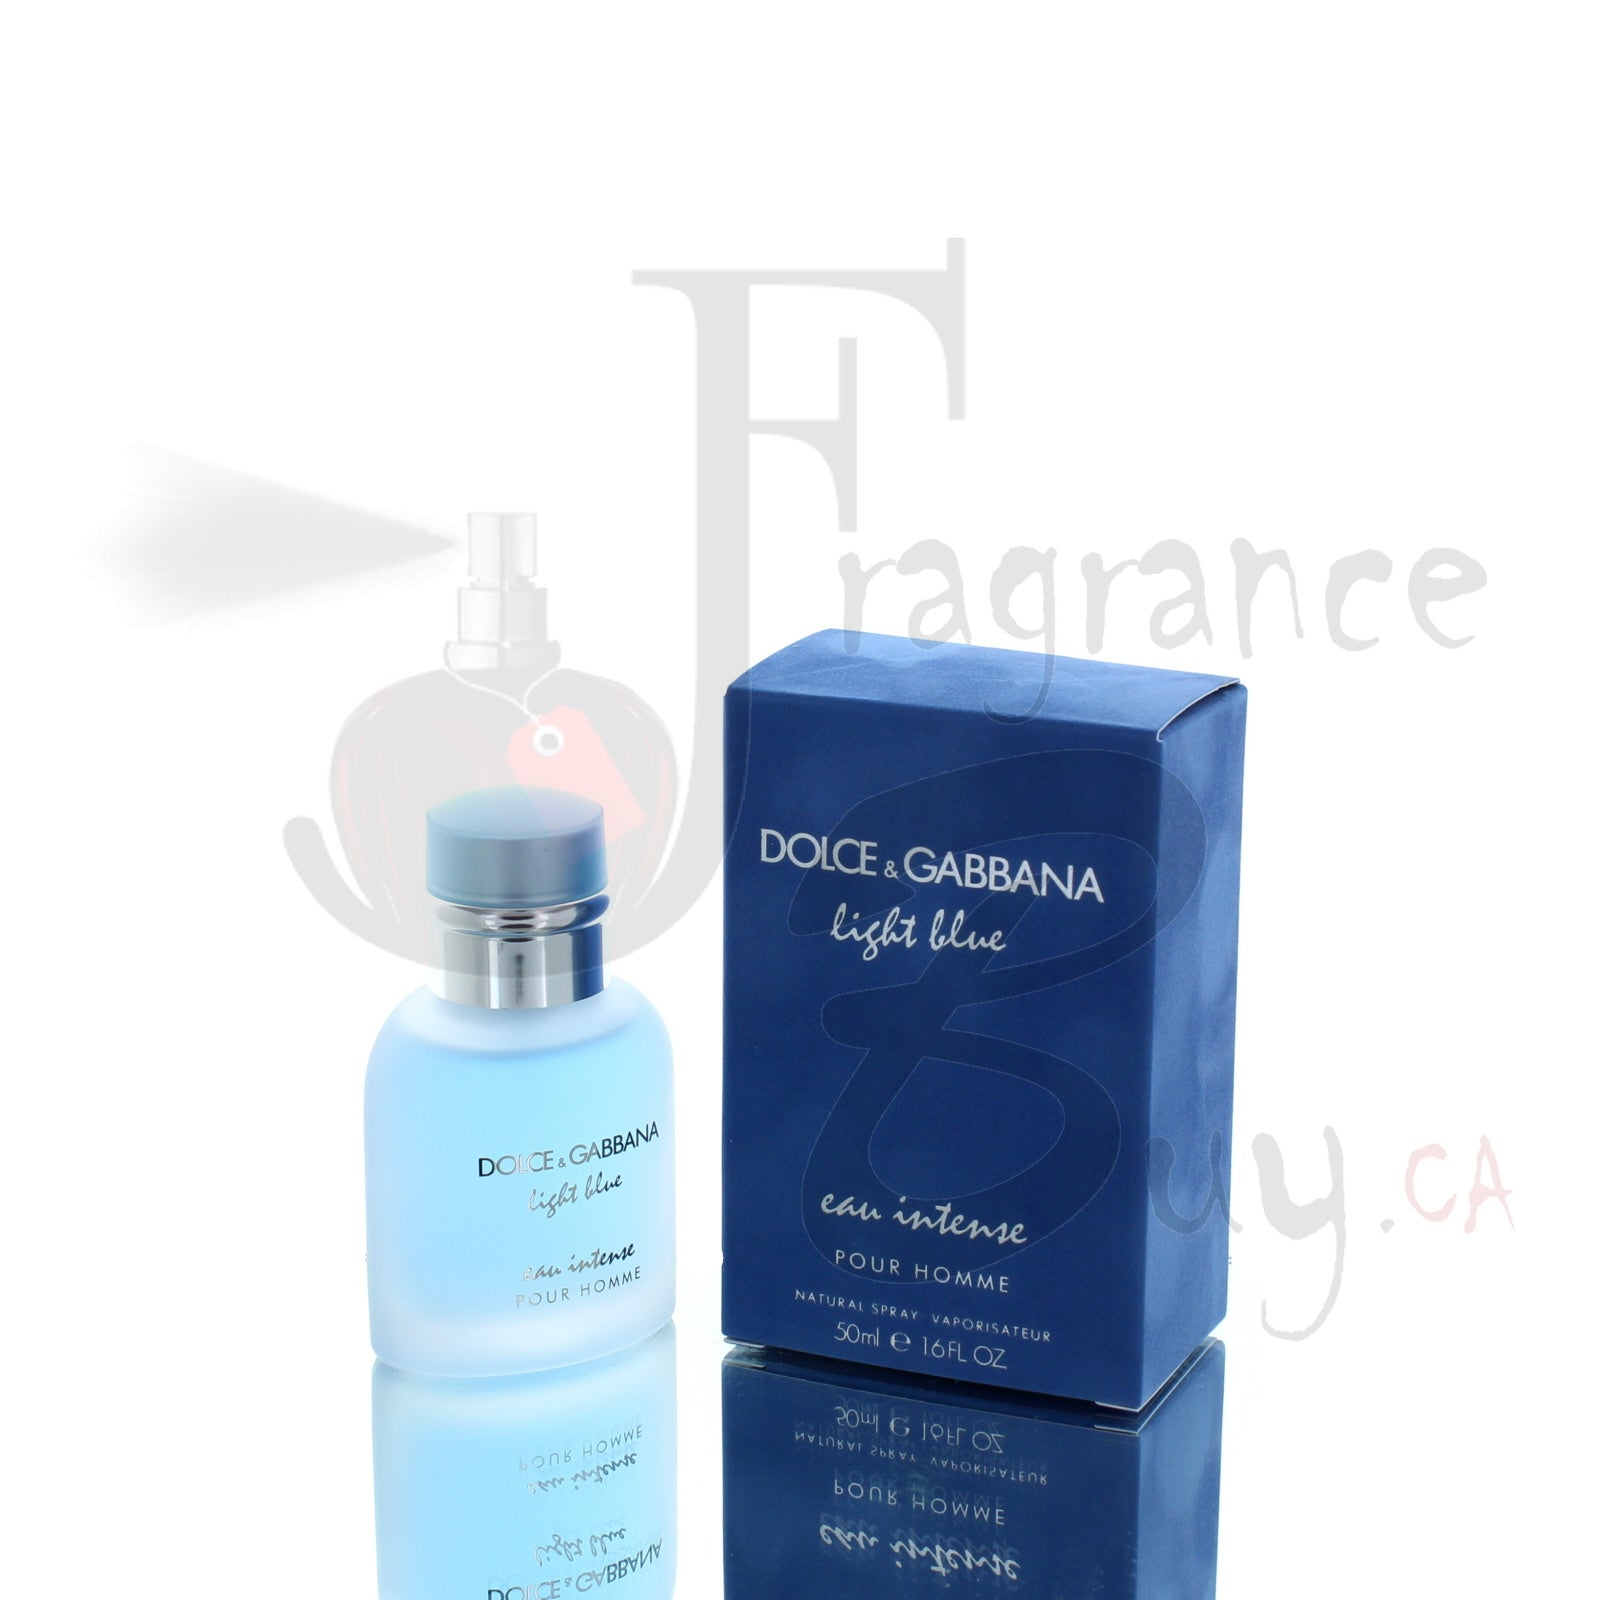 Dolce & Gabbana Light Blue Eau Intense For Man